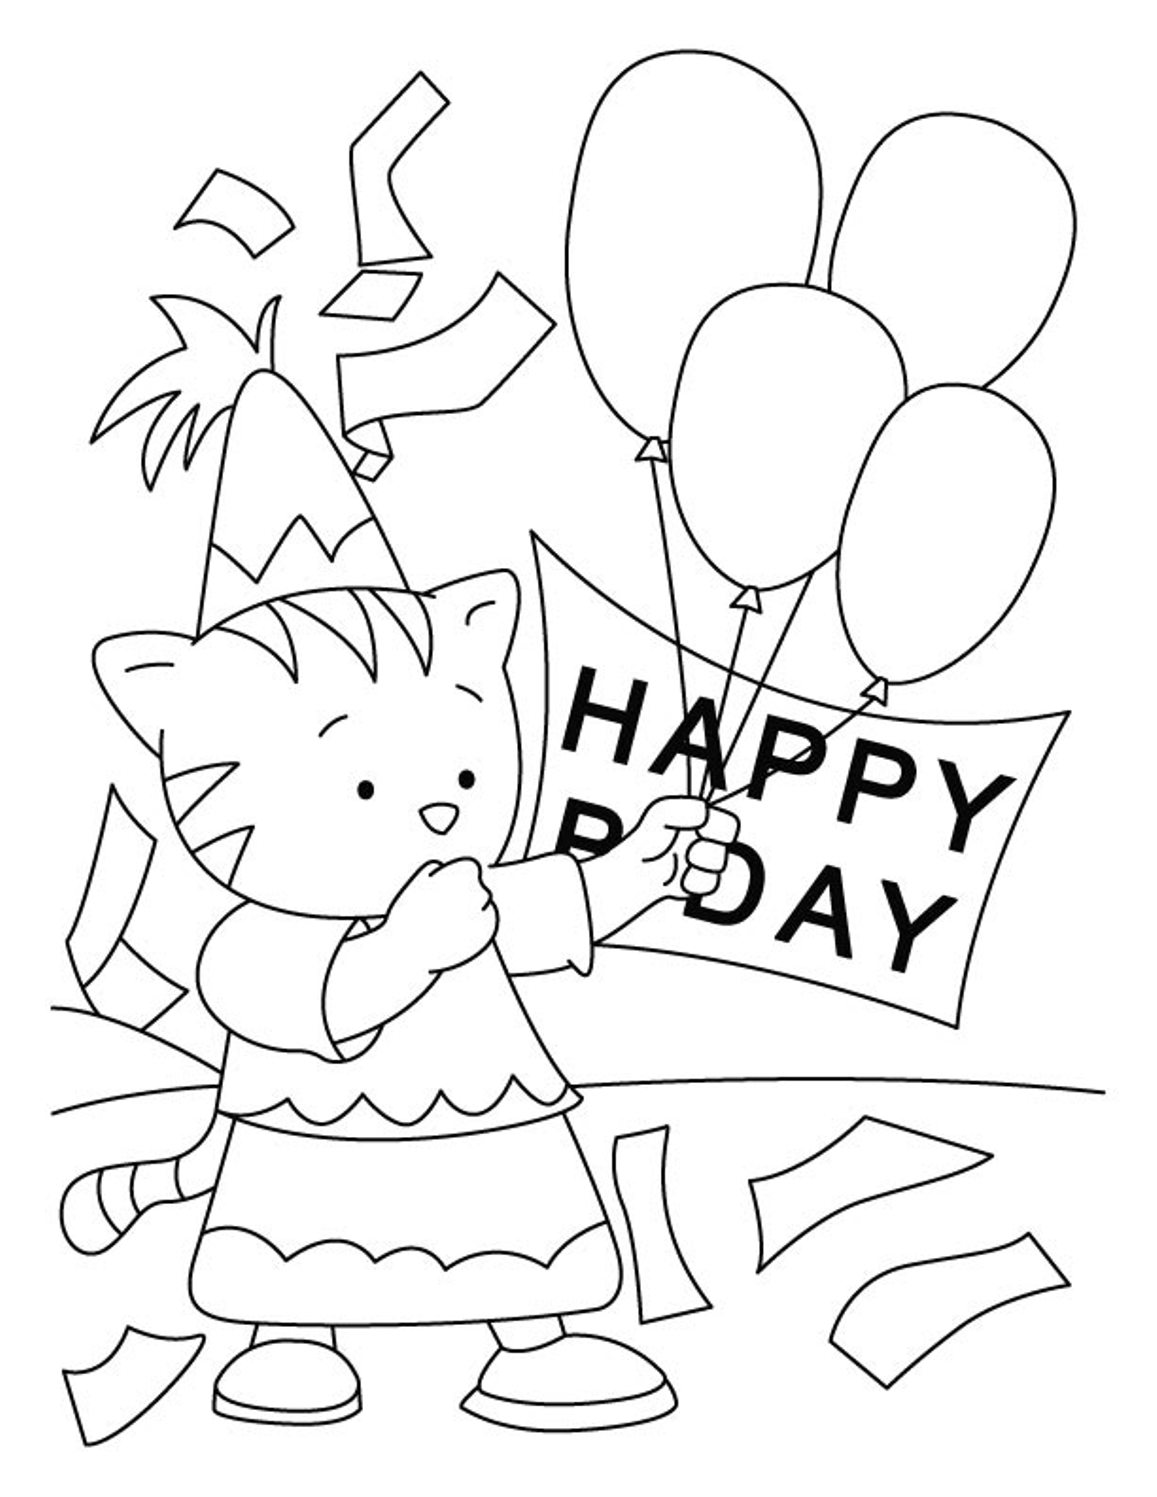 birthday coloring sheets free printable ; Happy-birthday-coloring-pages-free-printable-download-for-kids-animals-balloon-cake-bird-elmo-disney-activity-sheets-boy-girl-crafts-9